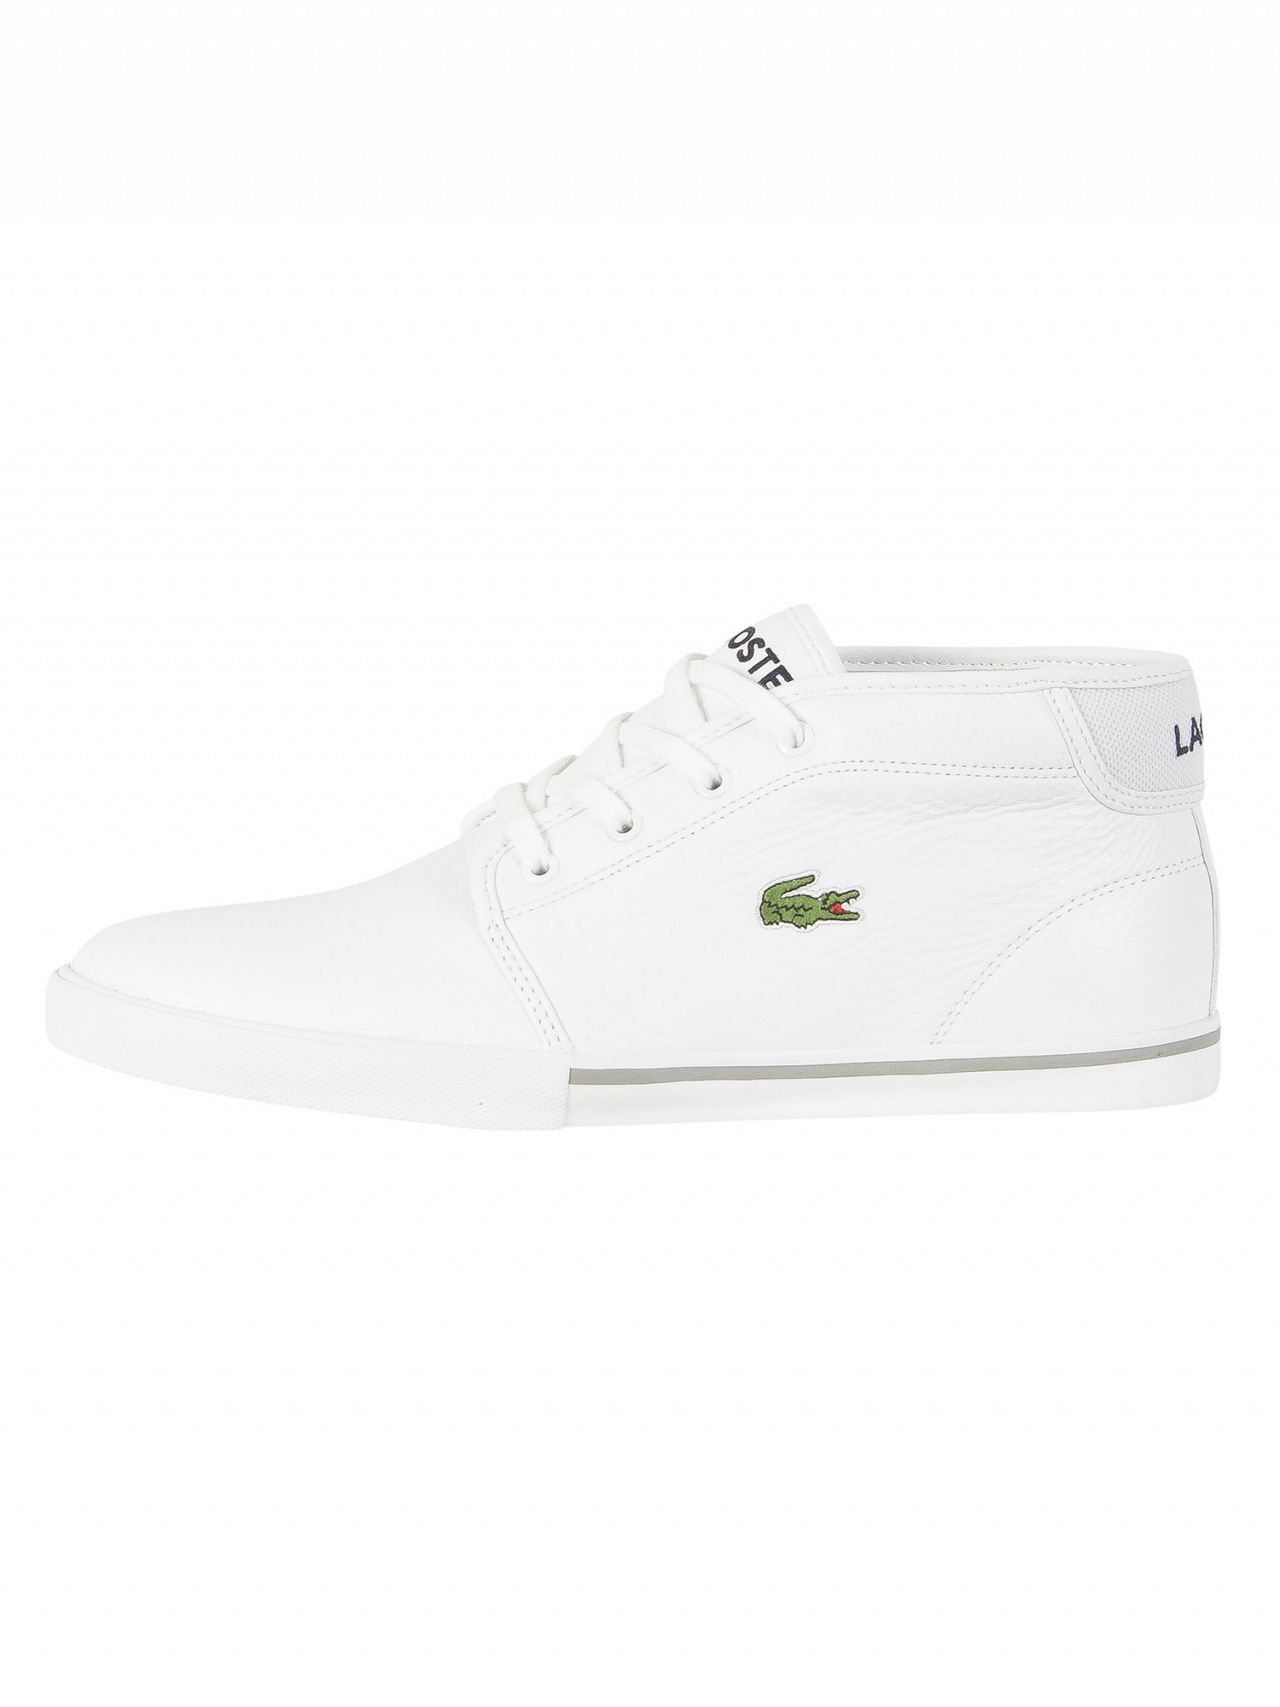 f829c85af2e6b Lacoste White/White Ampthill LCR3 SPM Trainers